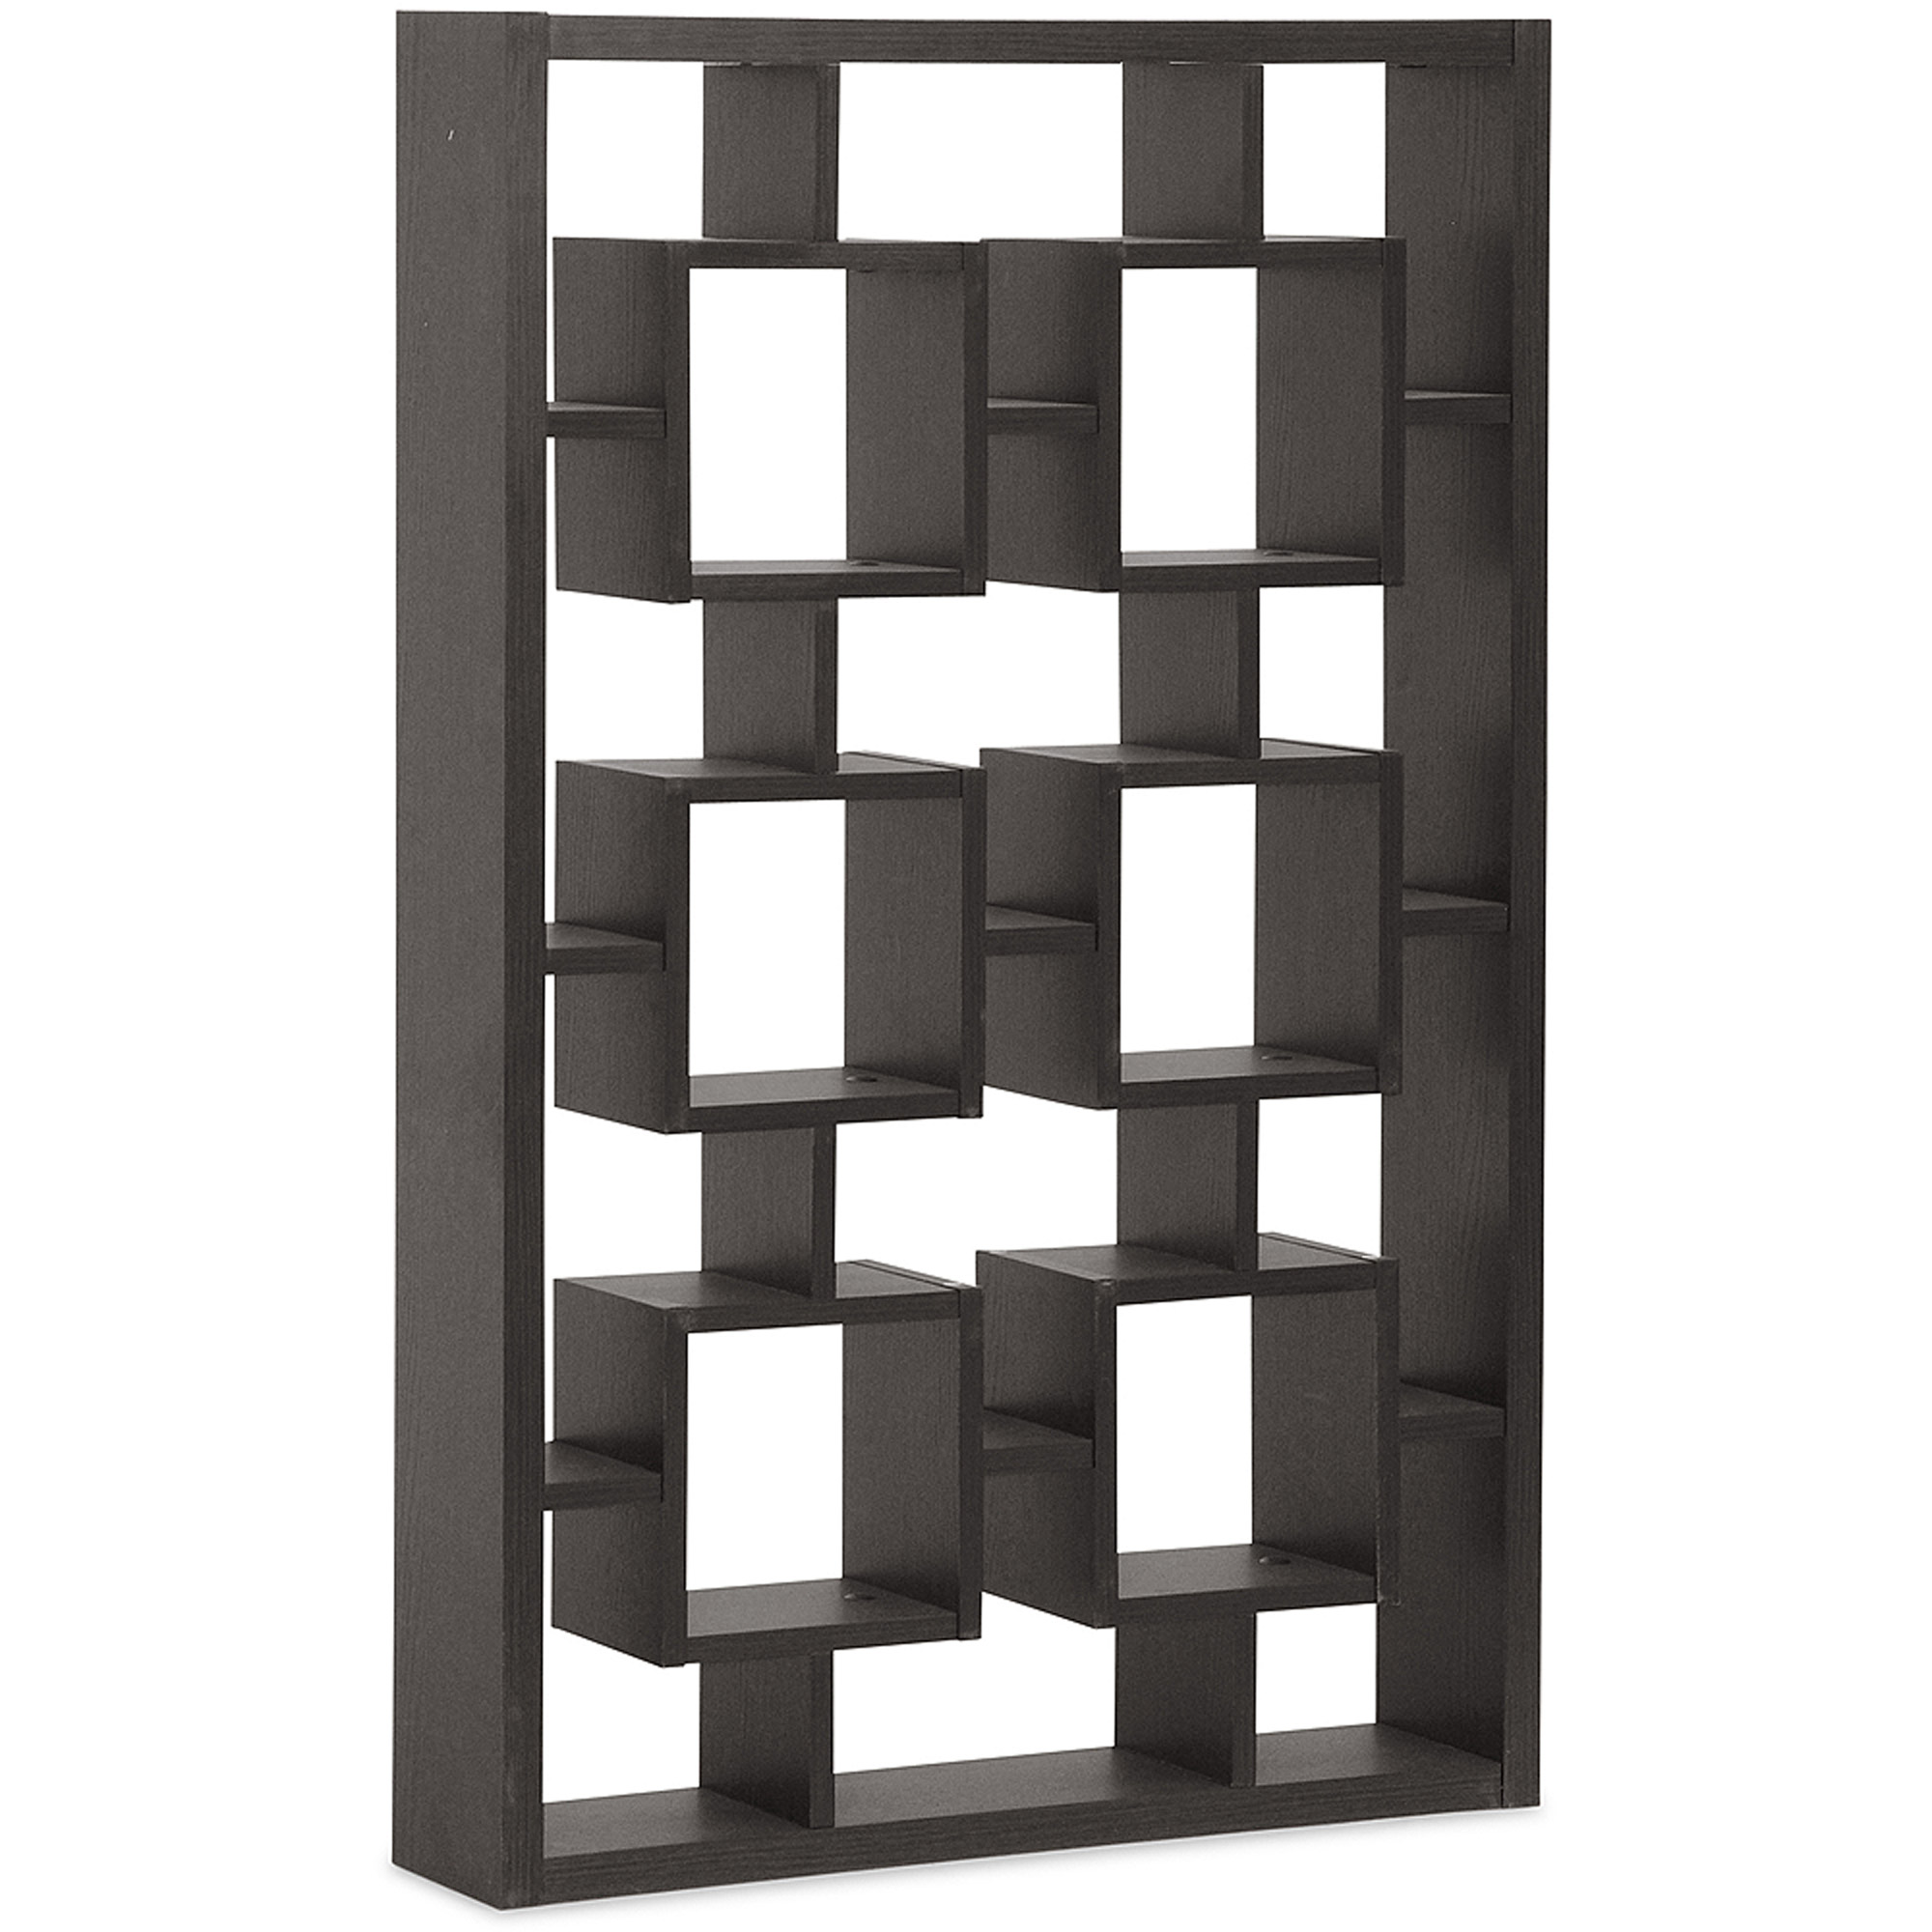 Eyer Dark Brown Modern Display Shelf